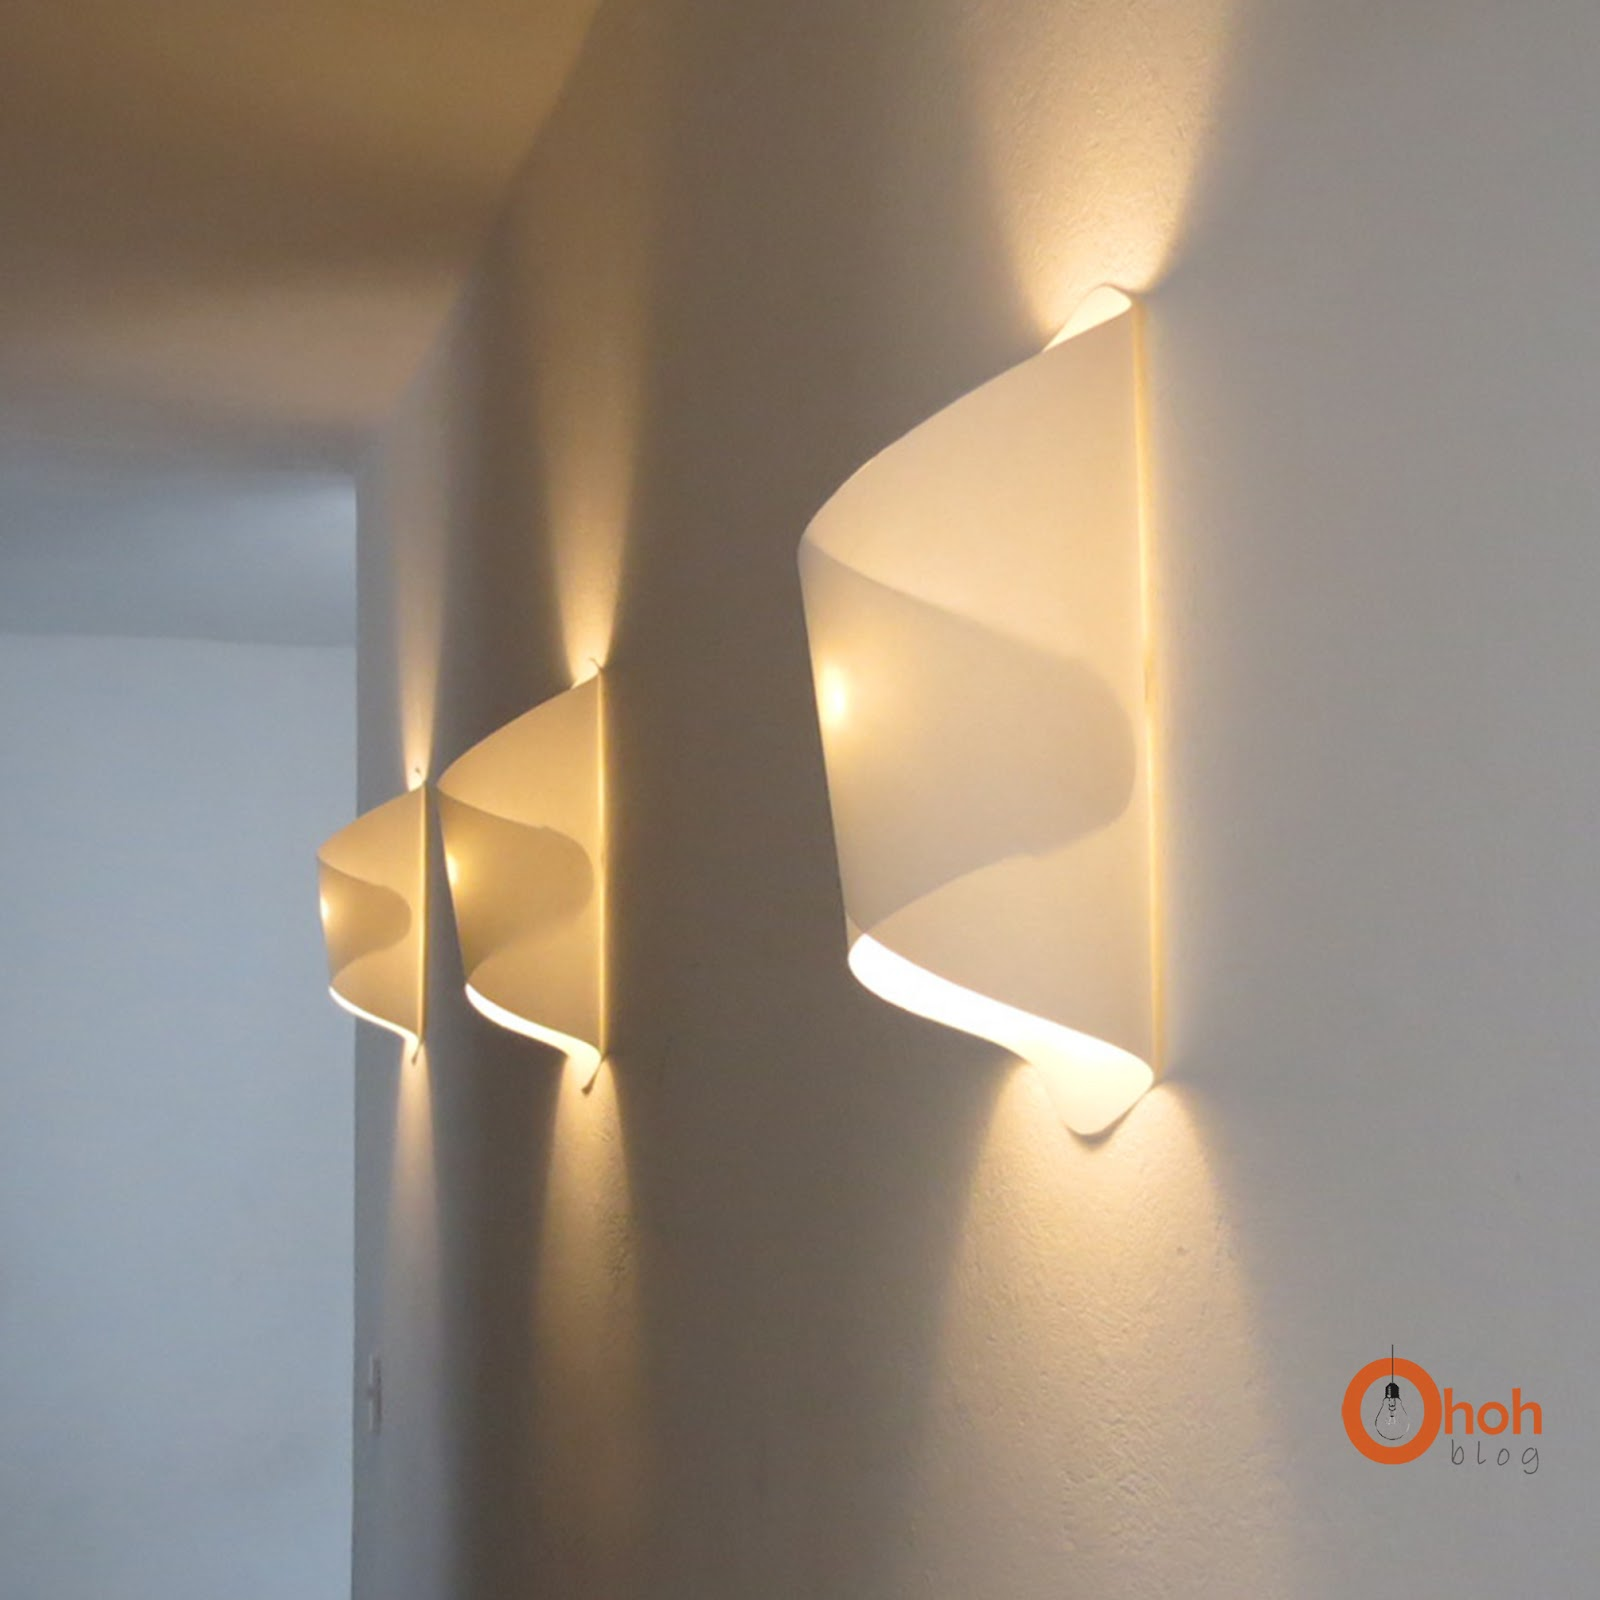 Wall Lamps For Pictures : DIY paper lamp / Lampara de papel - Ohoh Blog